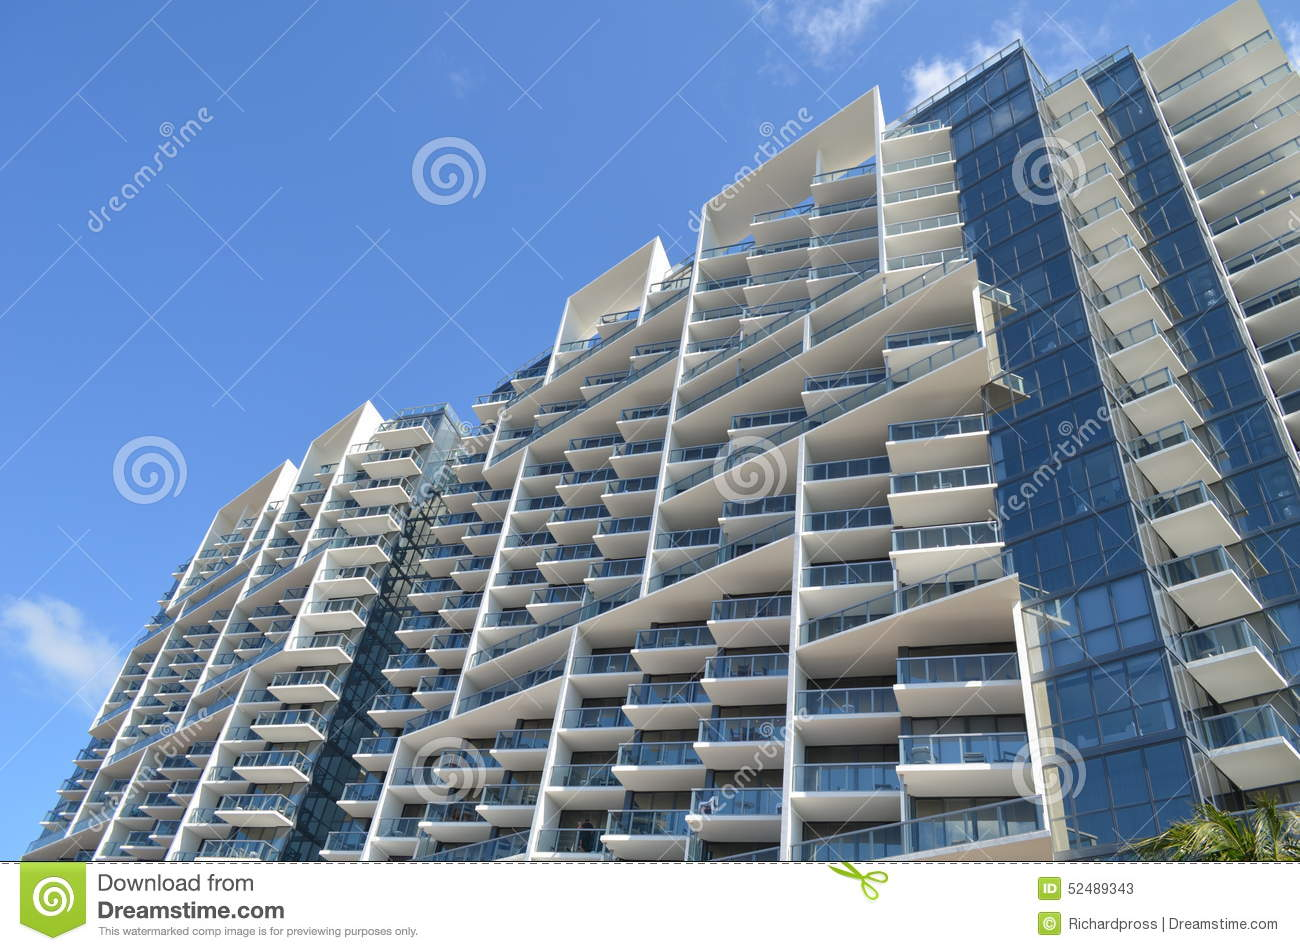 Modern Architecture Miami miami beach modern architecture stock photo - image: 52489343